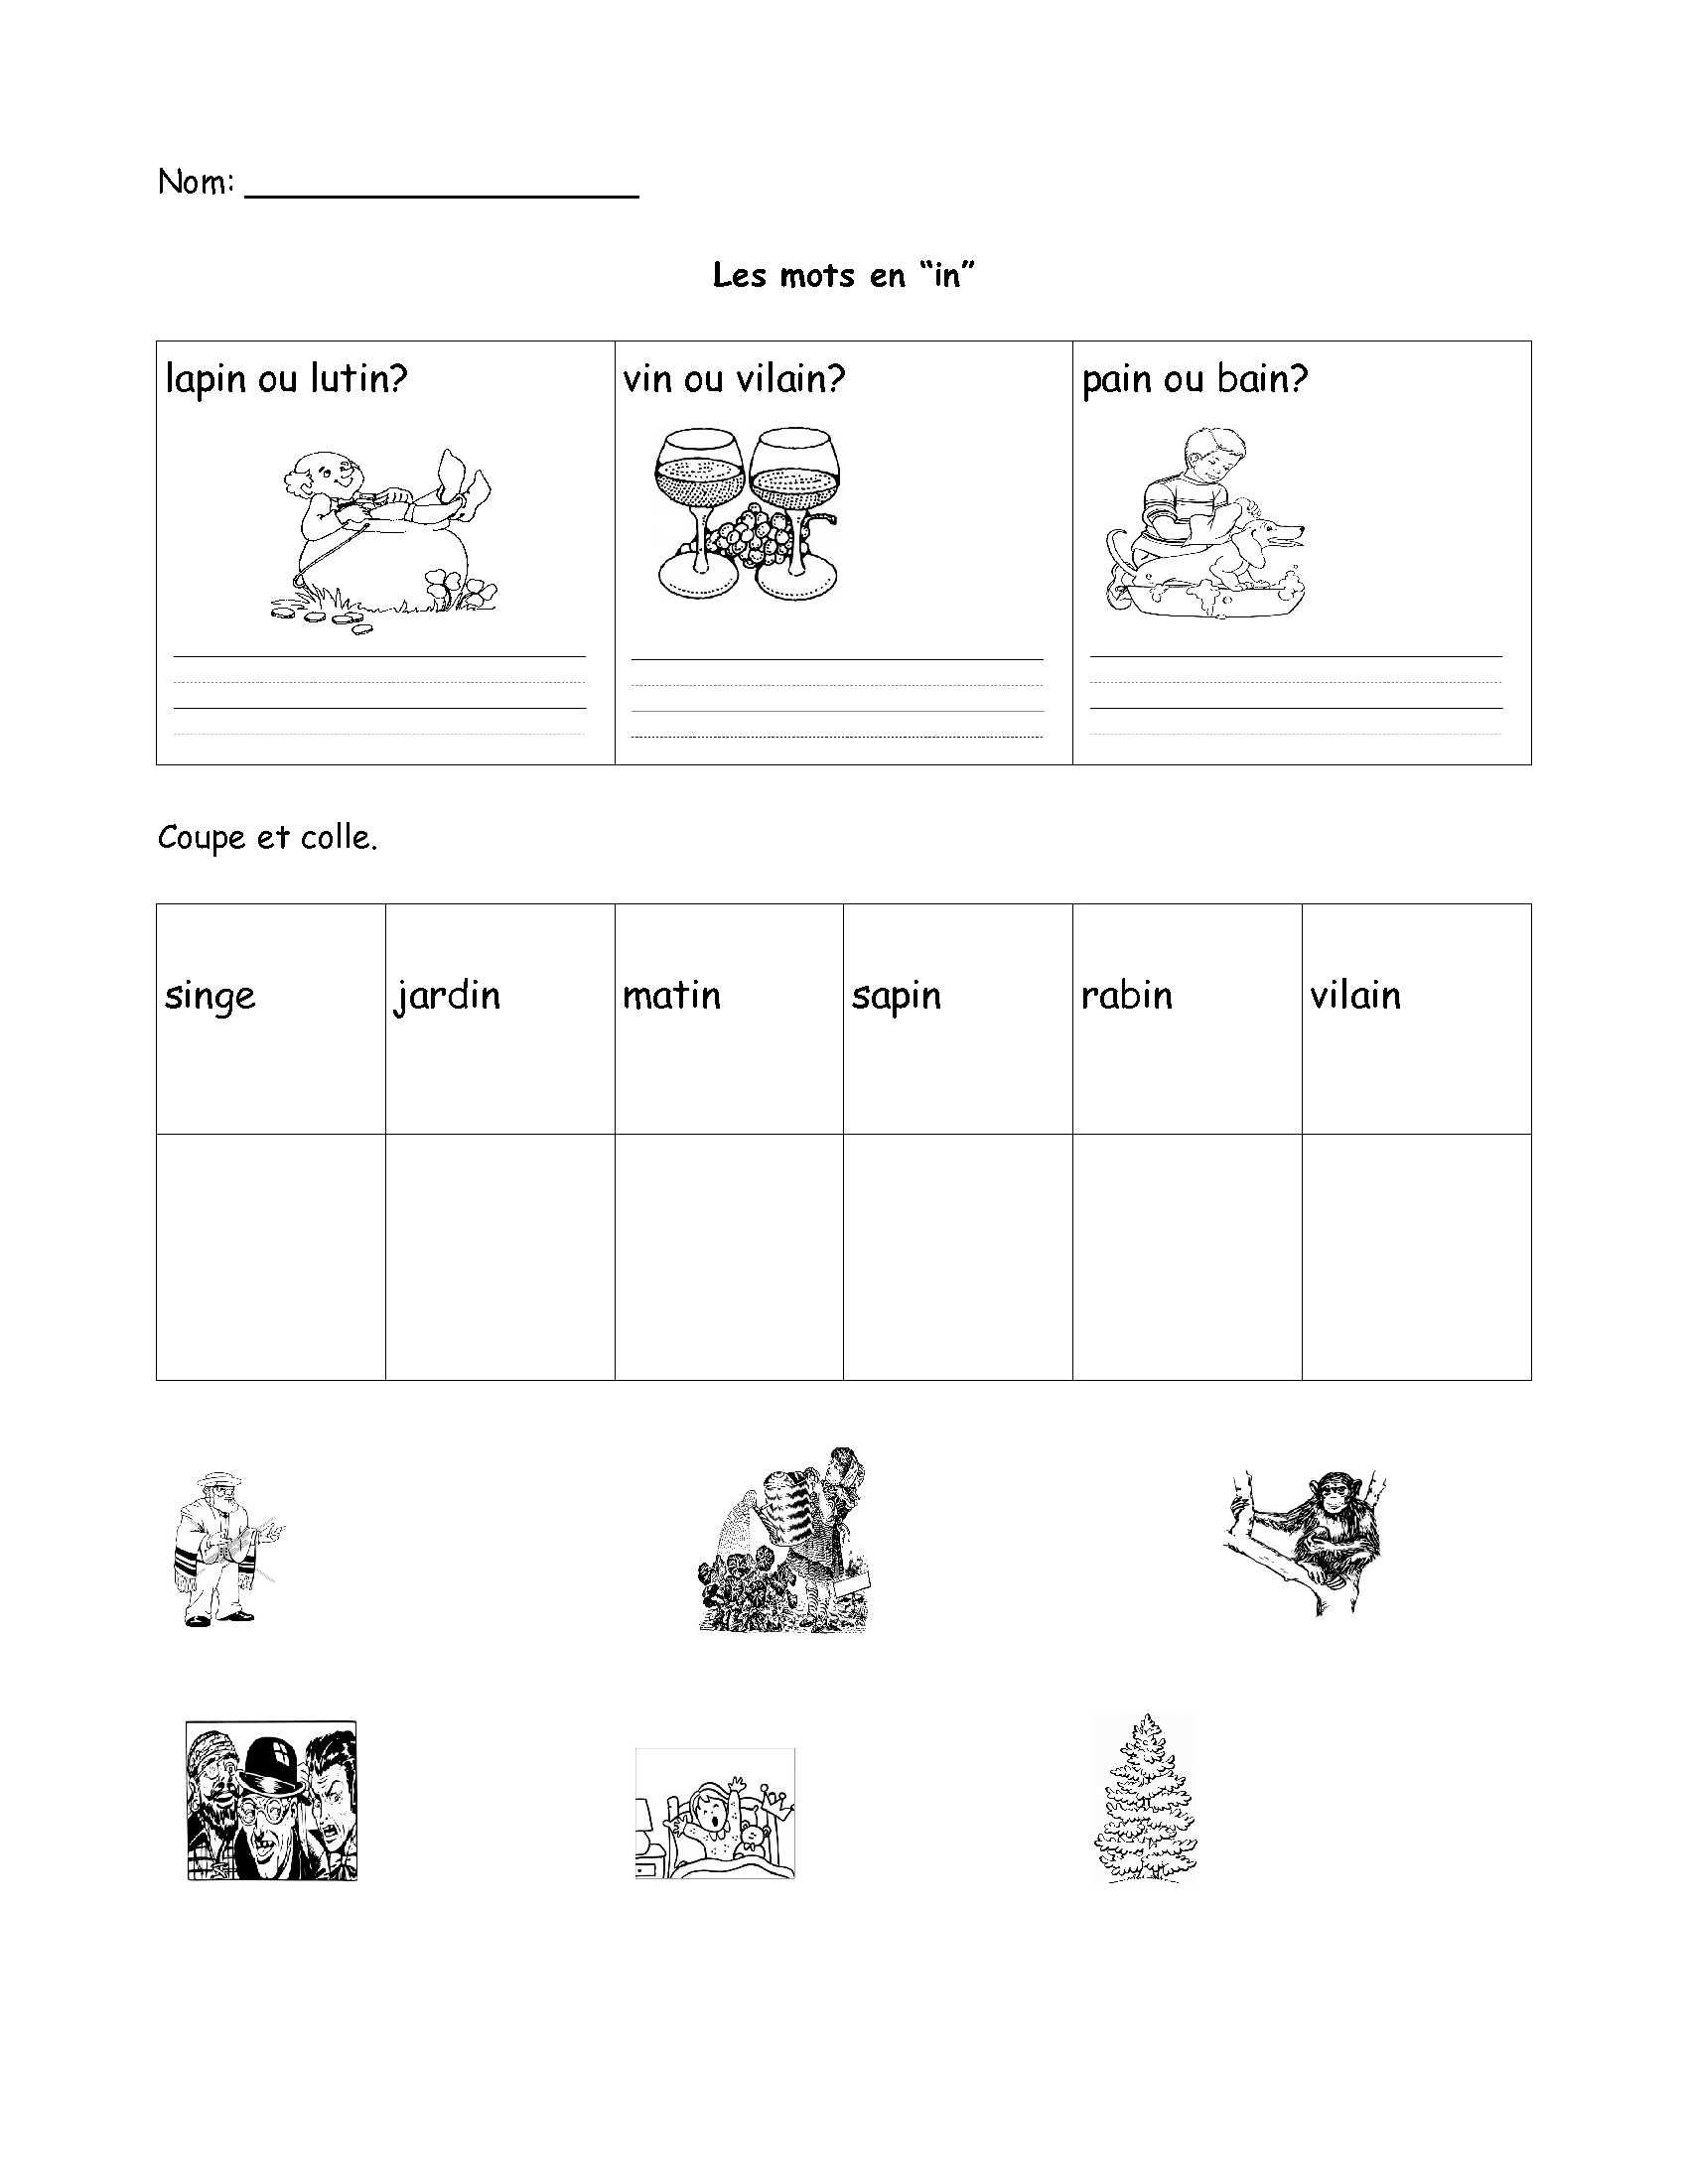 Free French Worksheet Grade 1 Grade 2 Grade 3 Fsl Core French Vocabulary